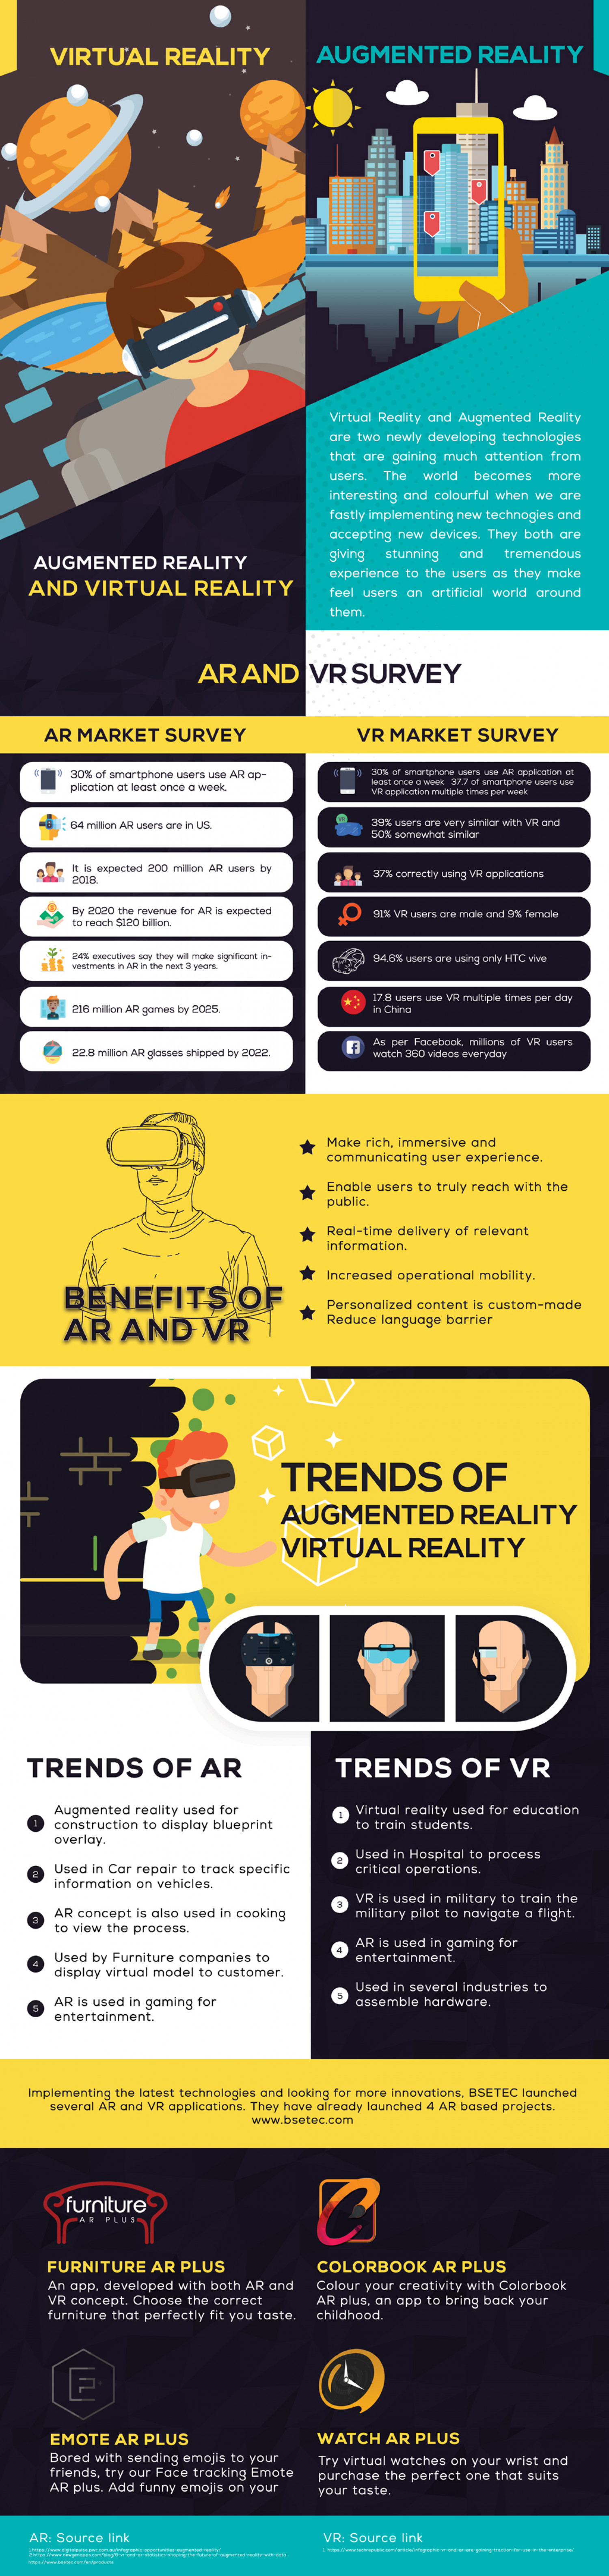 Augmented Reality Vs Virtual Reality Infographic